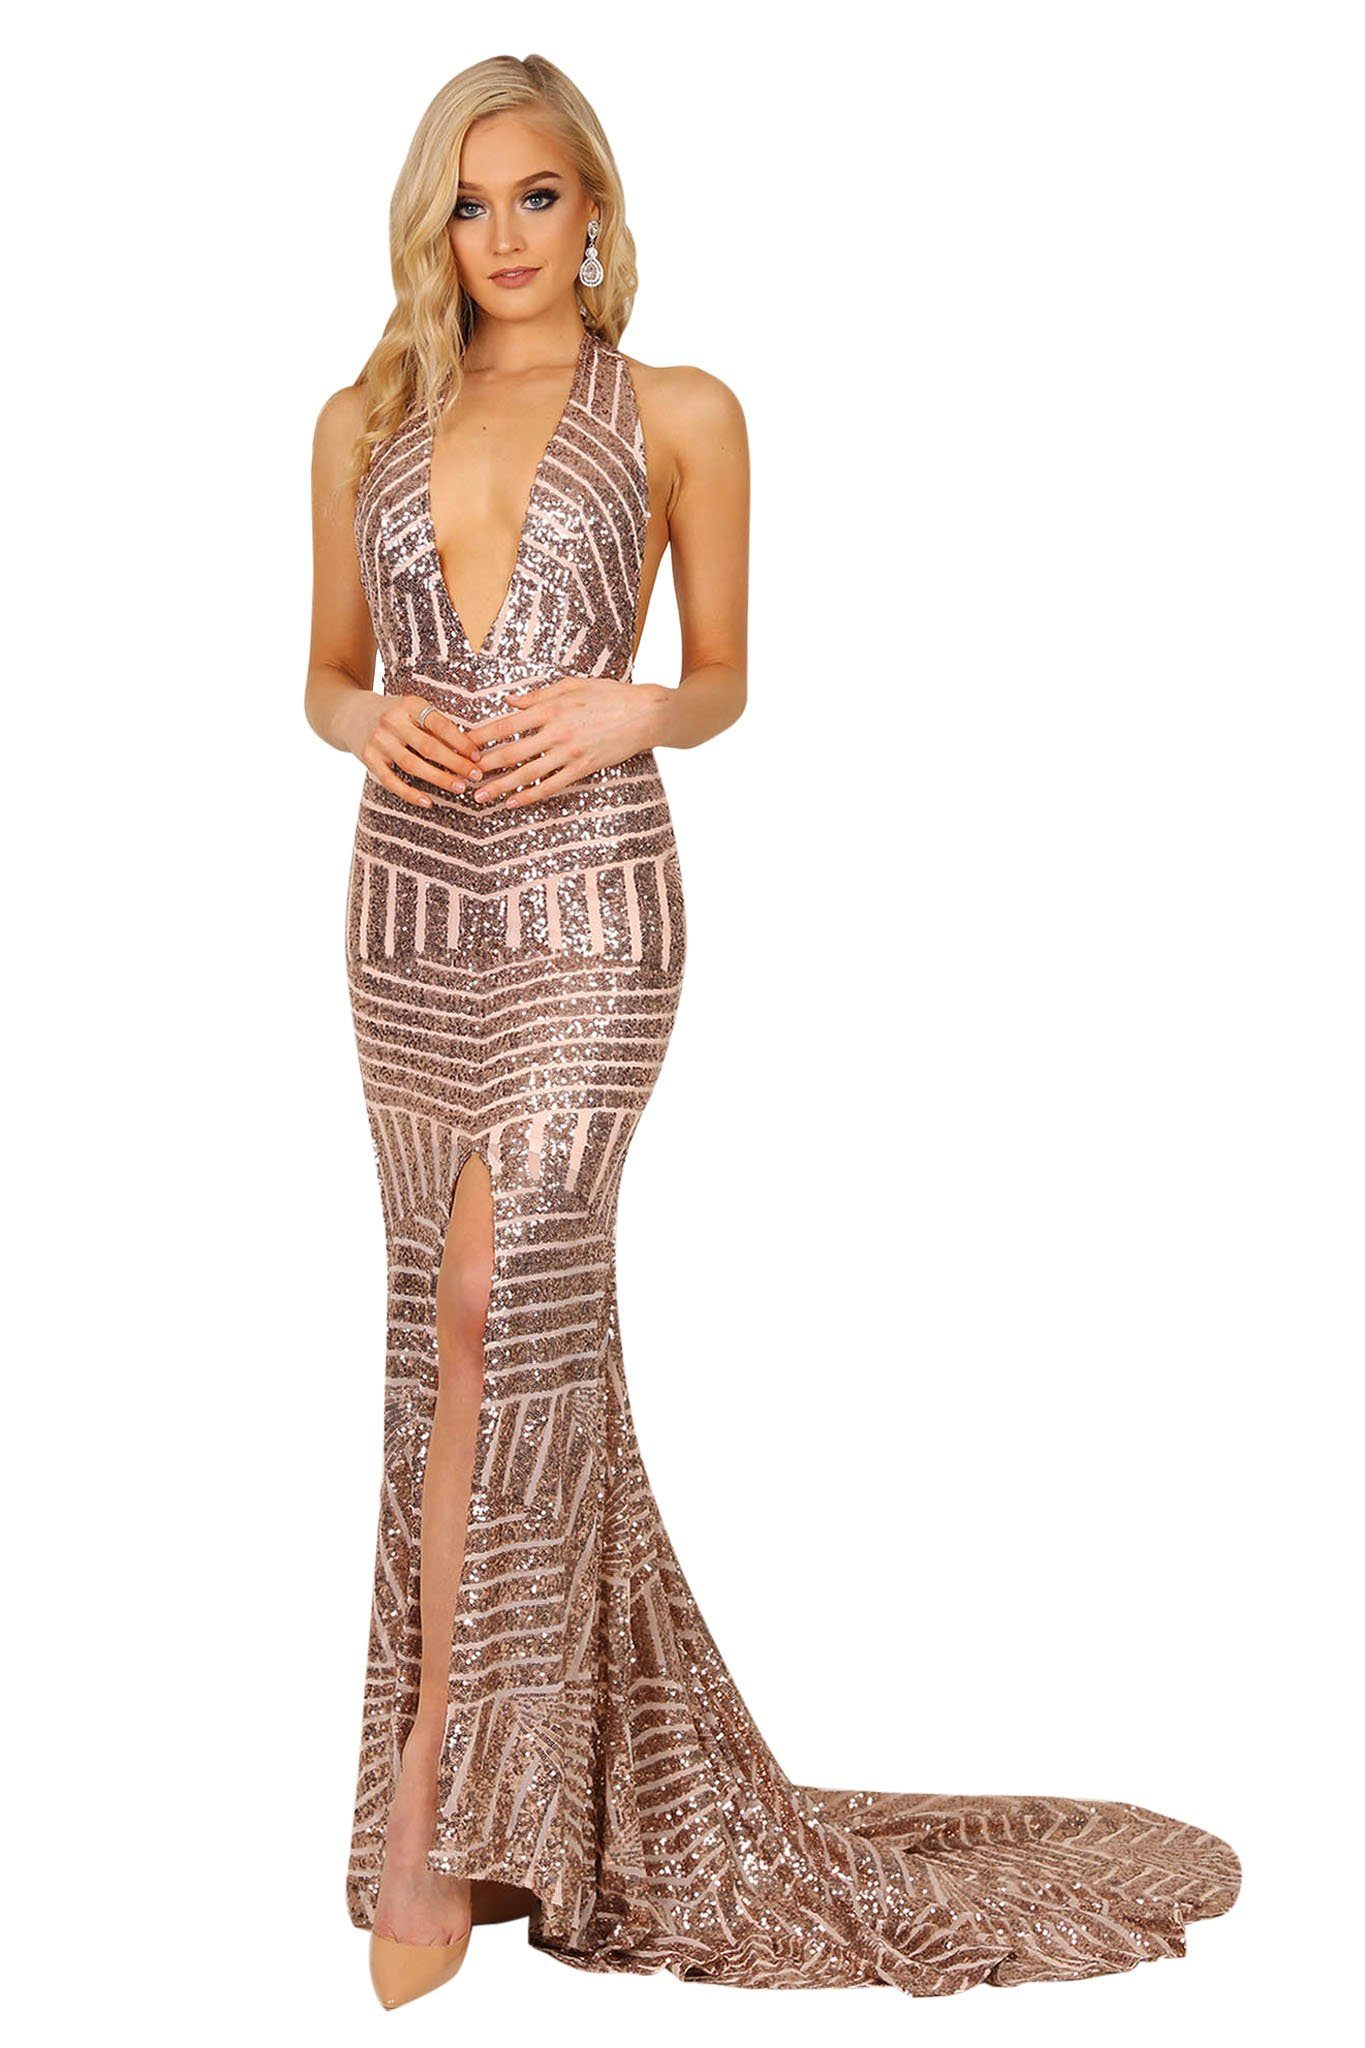 Rose gold sequin formal gown with plunging halter-neck, open back, high center front slit, and a very long train